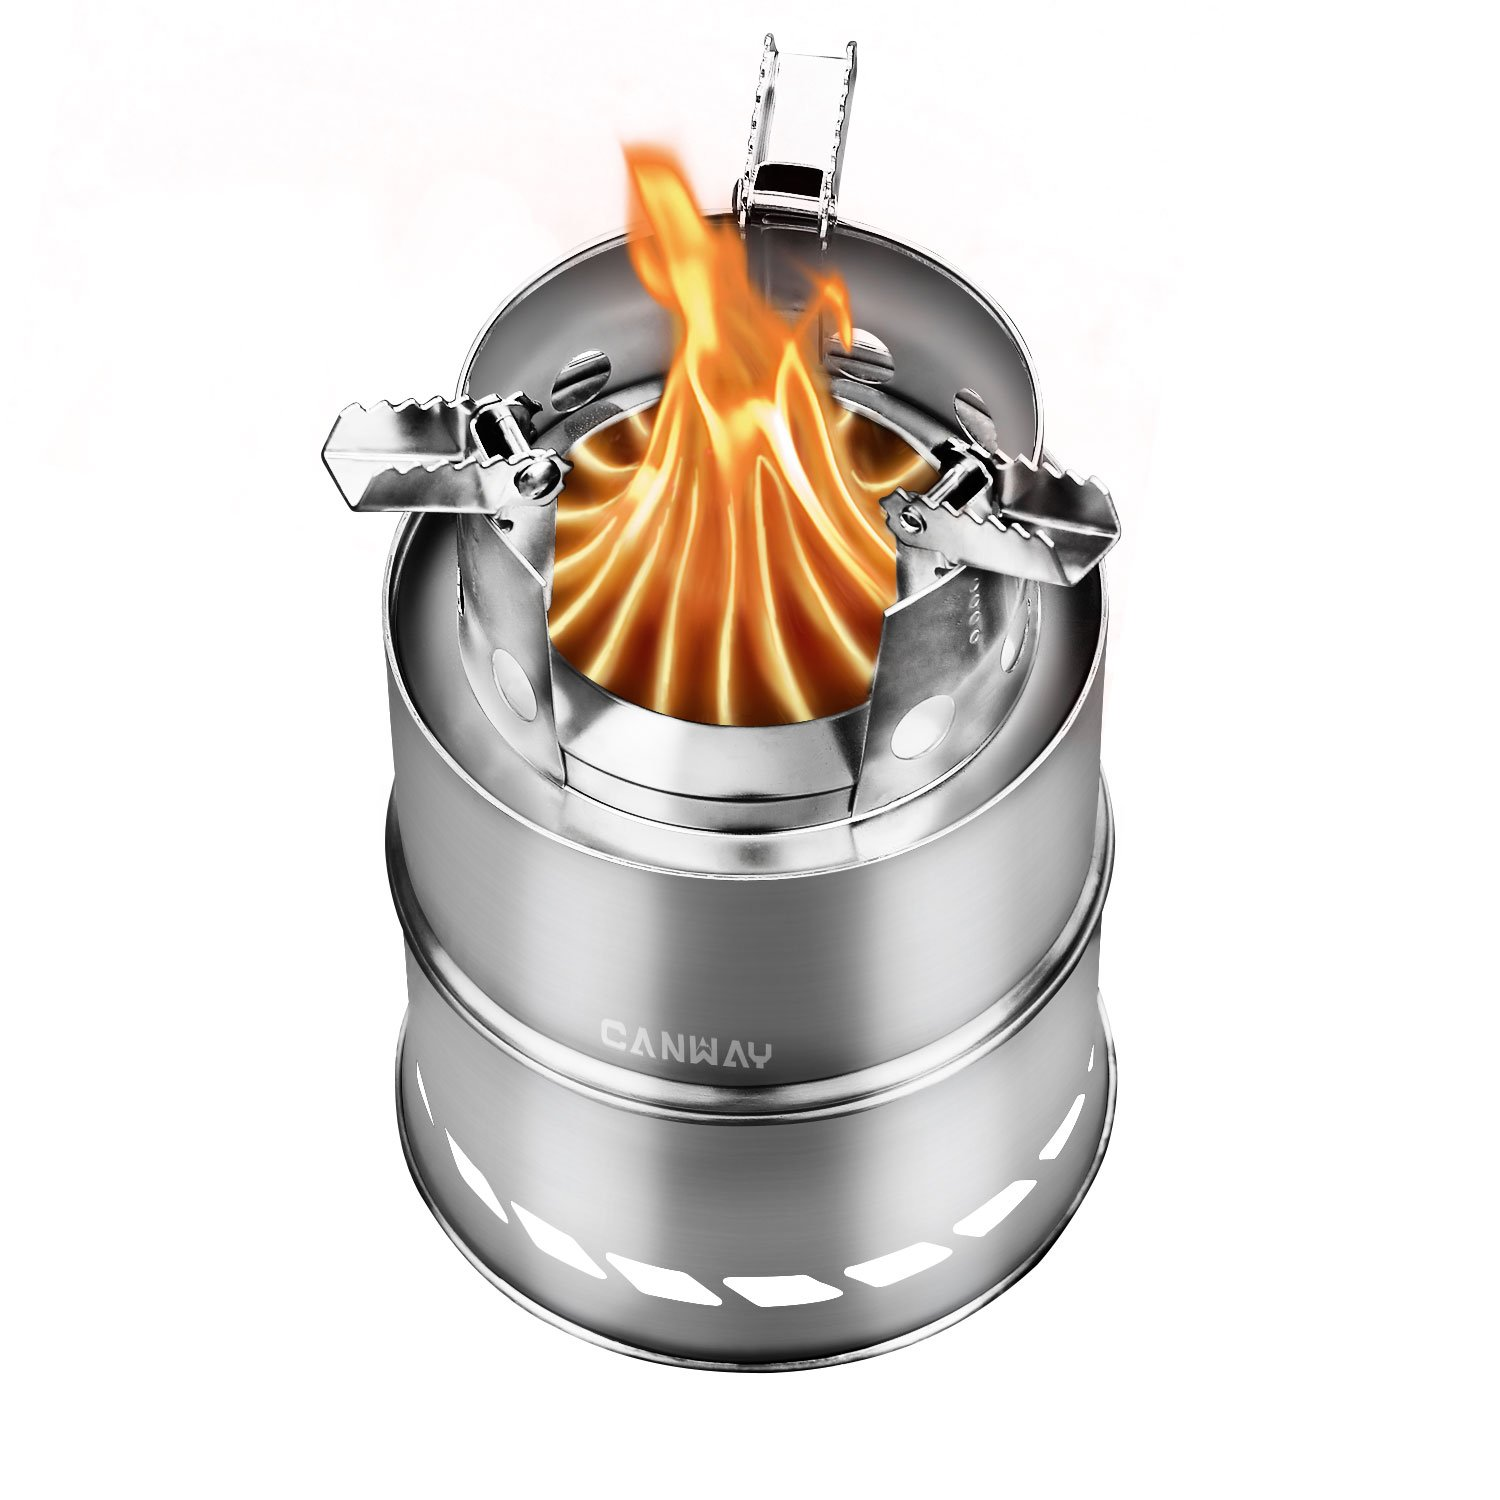 Canway Wood Burning Stove Stainless Steel Camping Stove Ebay